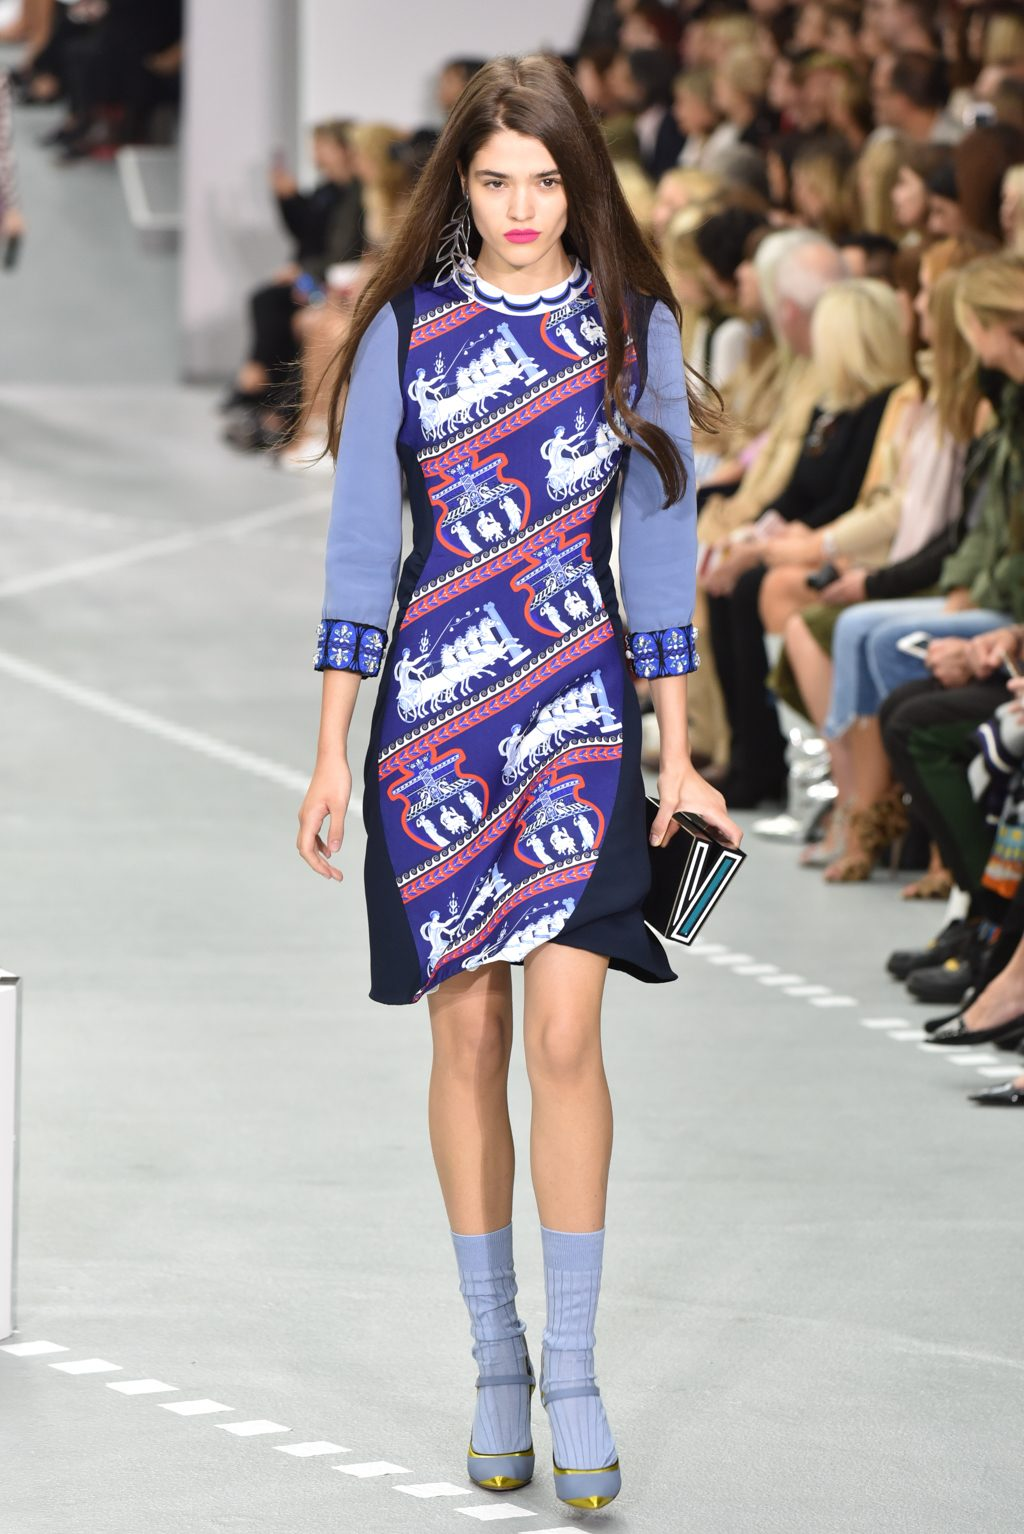 LFW-SS17-Mary-Katrantzou-Krisztian-Pinter-the-upcoming-8-1024x1534